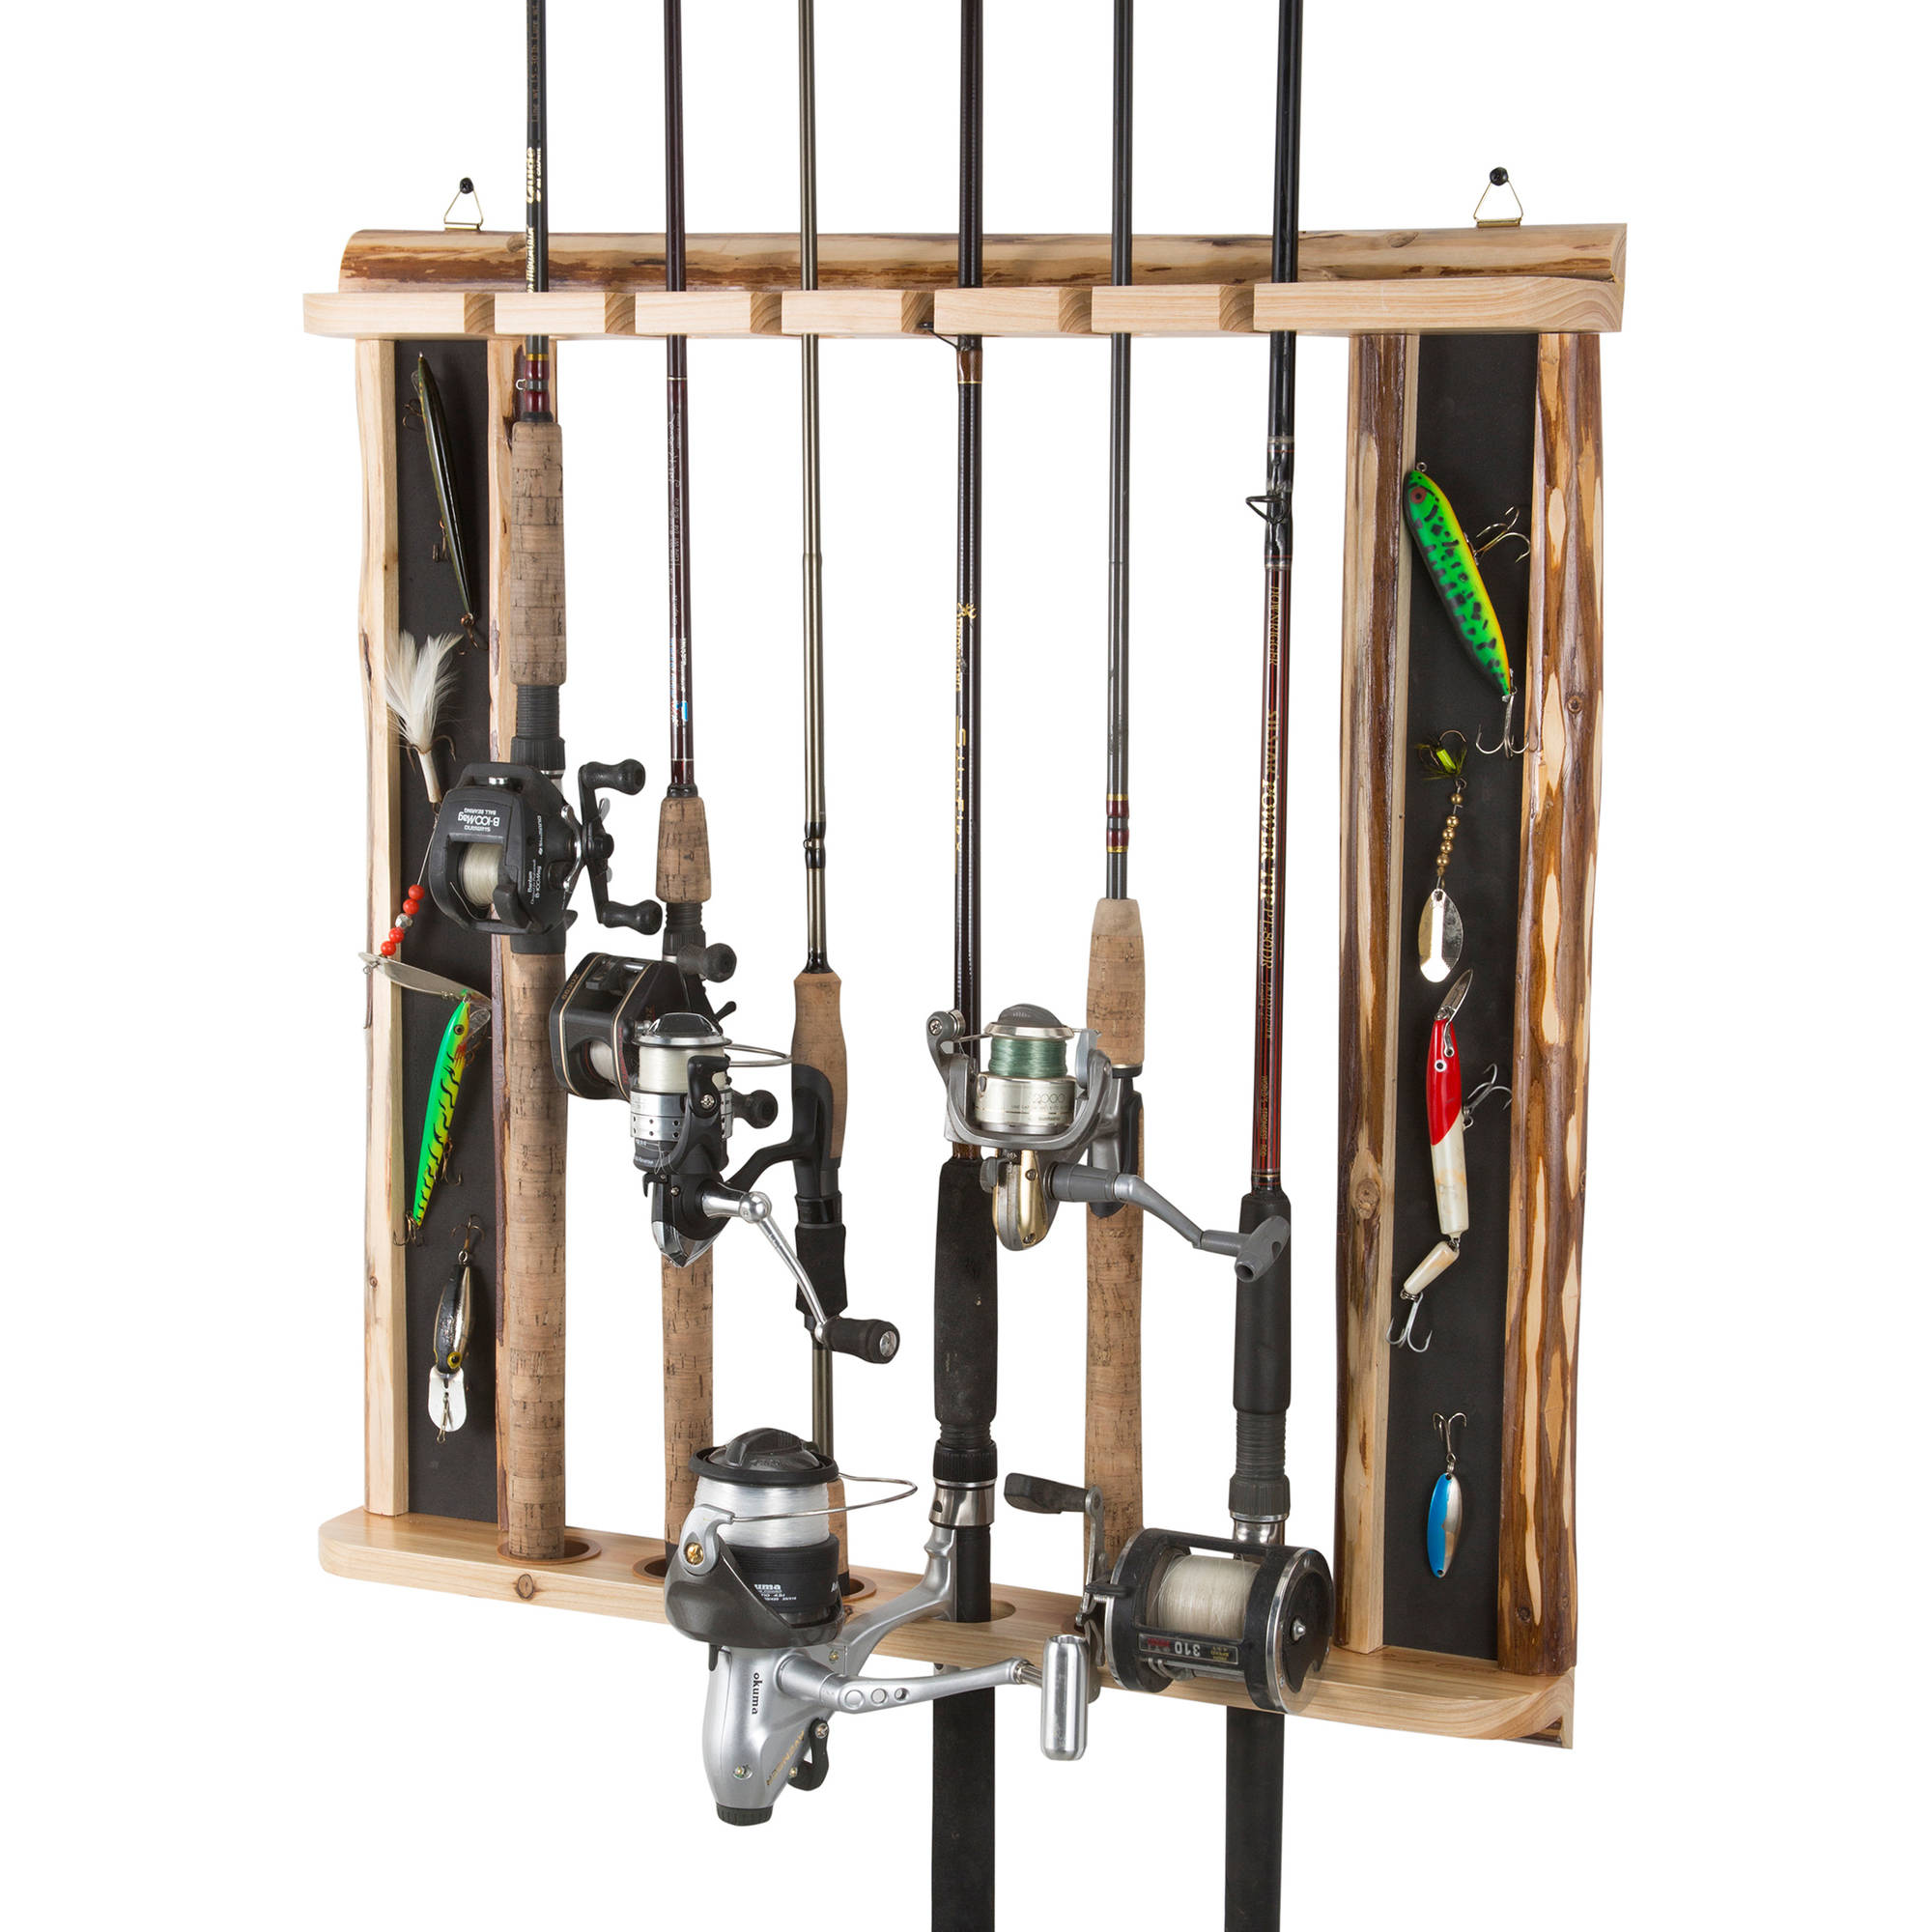 Rush Creek Creations 6-Fishing-Rod Vertical and Horizontal Storage Rack